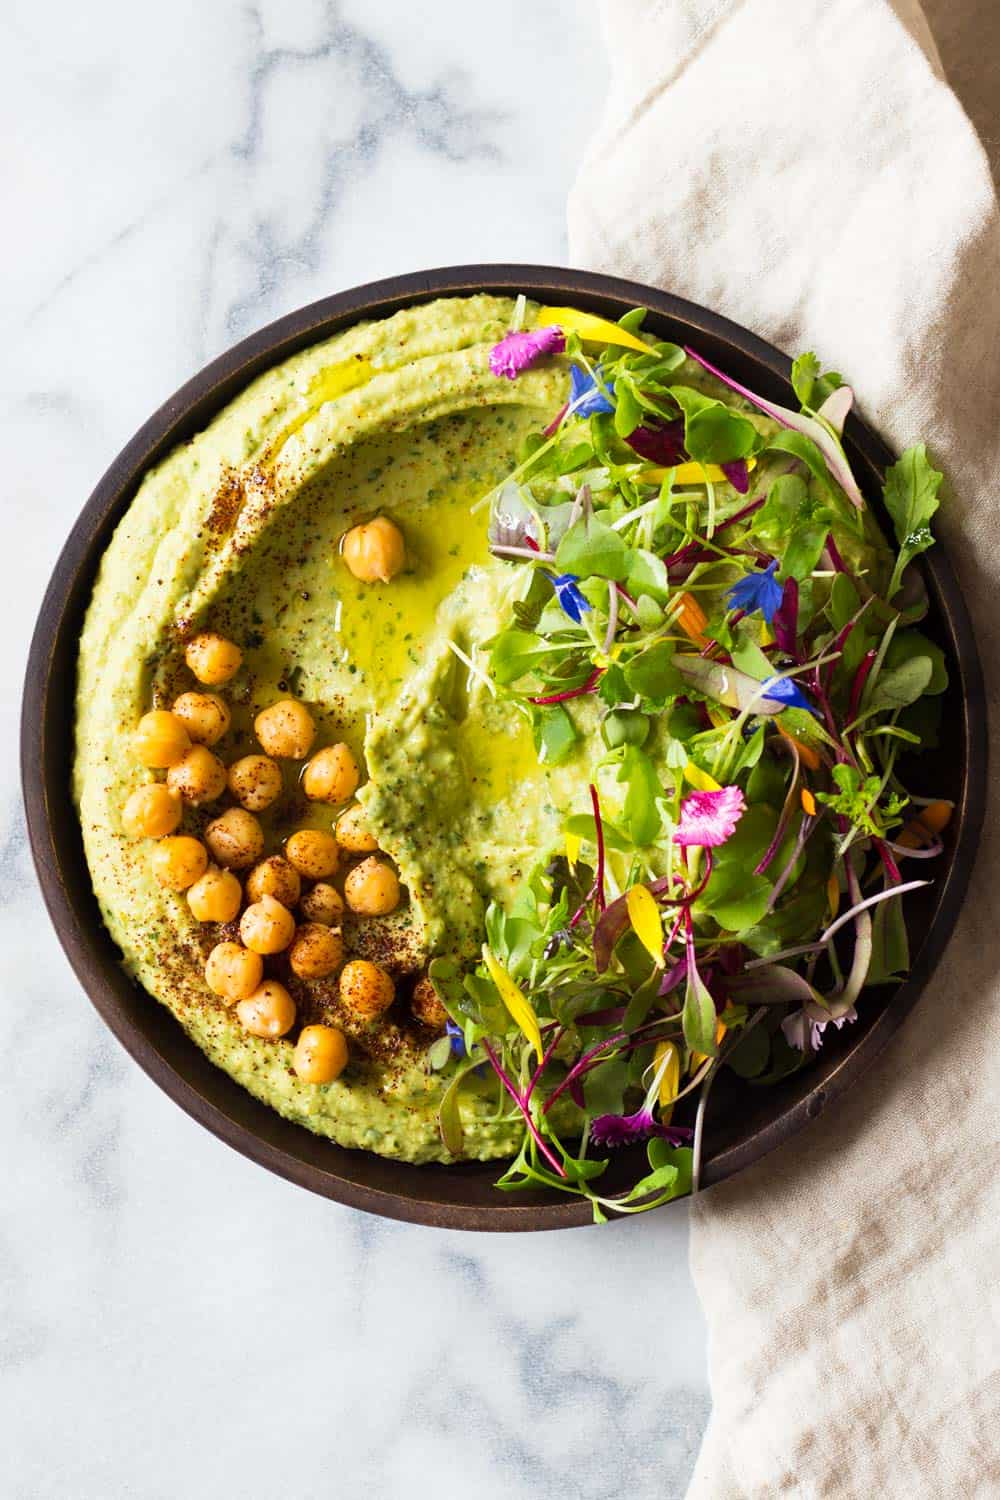 Call it what you want, Avocado Cilantro Hummus, Spicy Avocado Hummus, or 5-minute Hummus, one thing is for sure, this hummus tastes freakin' fenomenal!